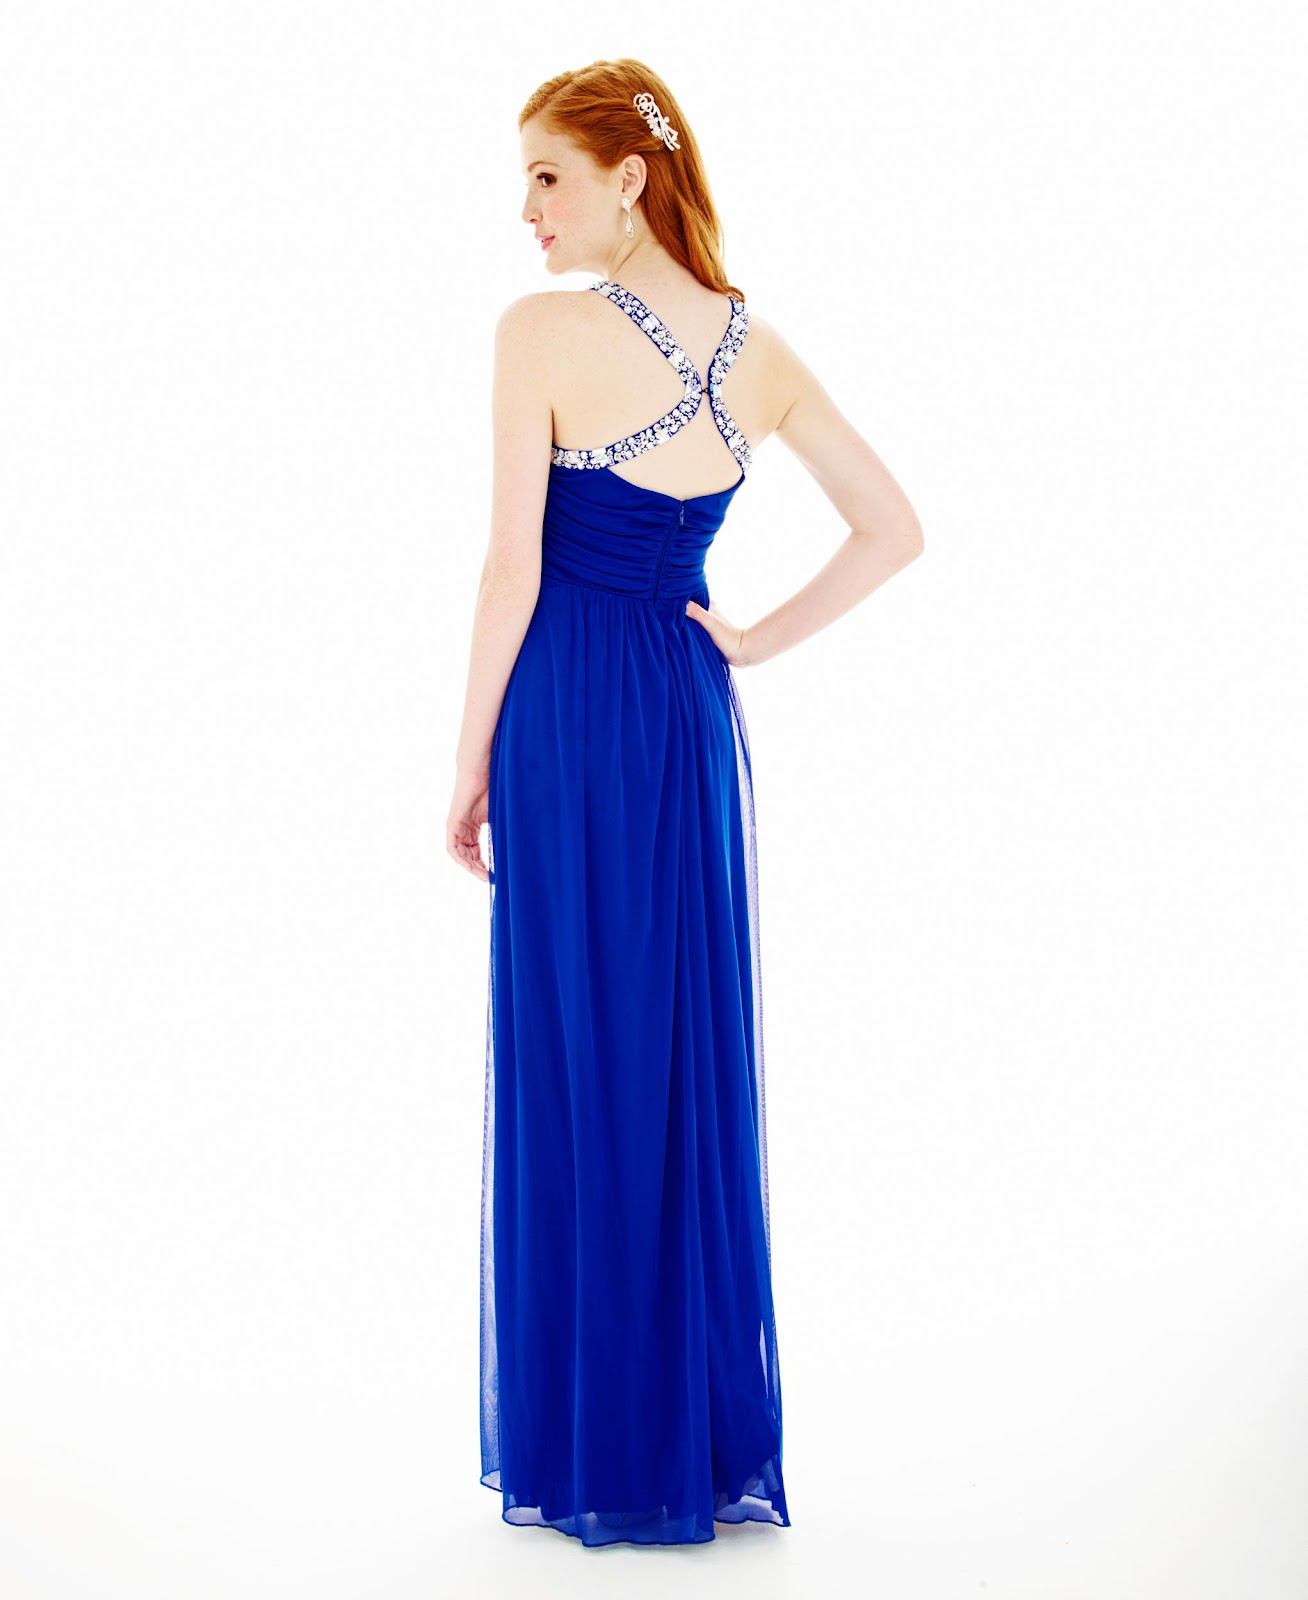 Fantastic Jc Penny Prom Dress Image Collection - Princess ...